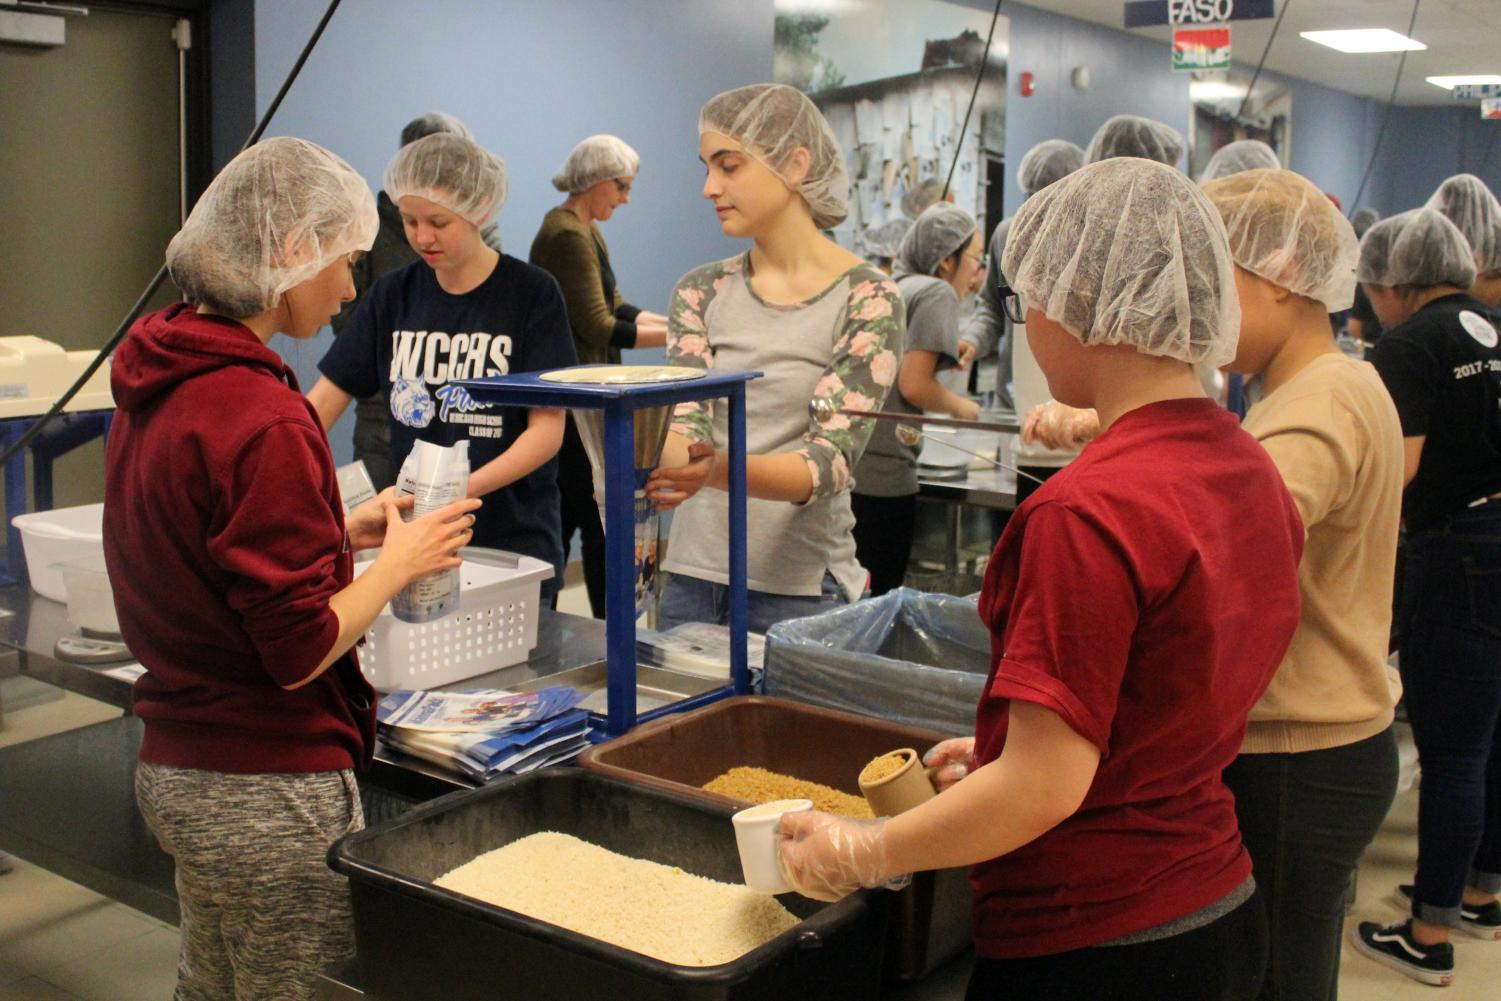 Last year students and staff members packed 268 boxes of food at Feed My Starving Children.